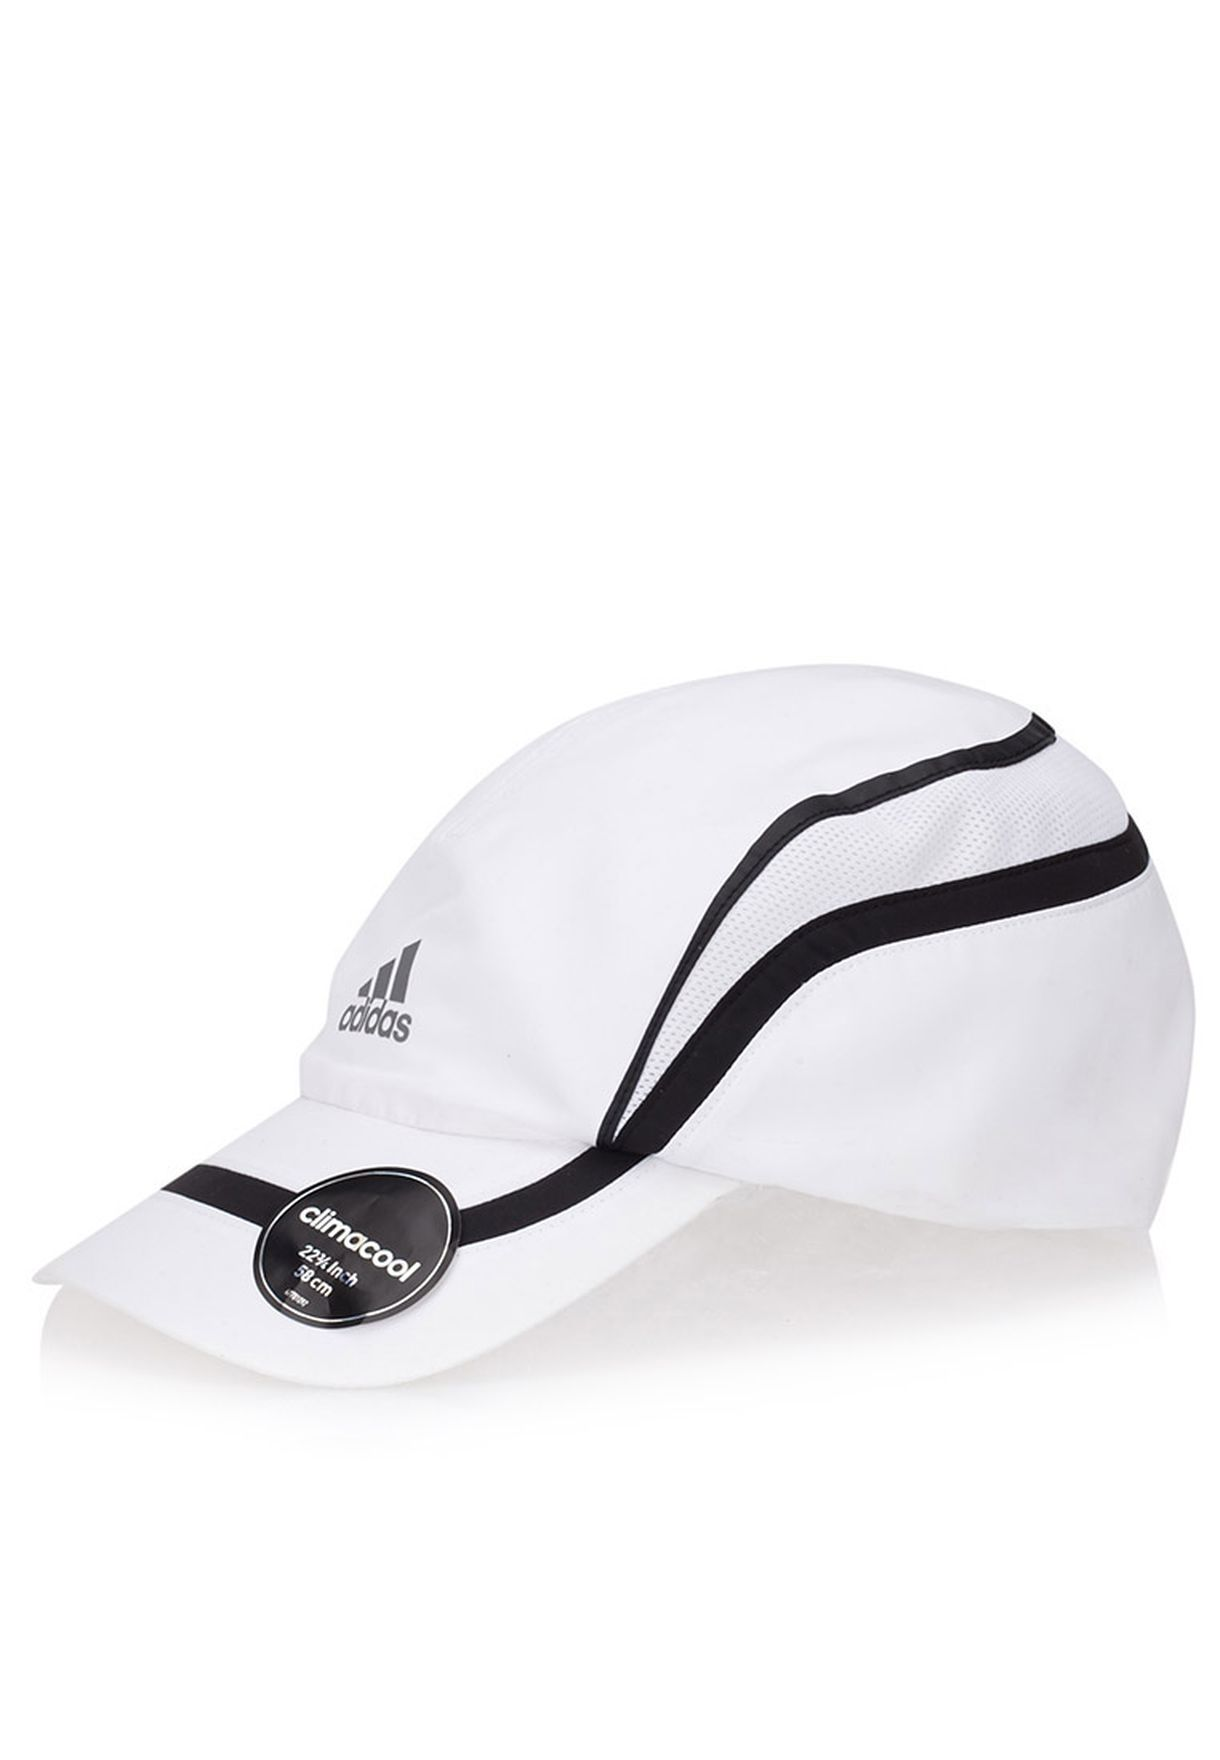 35fe42fa52e6 Shop adidas white Running Cap for Men in Qatar - AD476AC41IOG